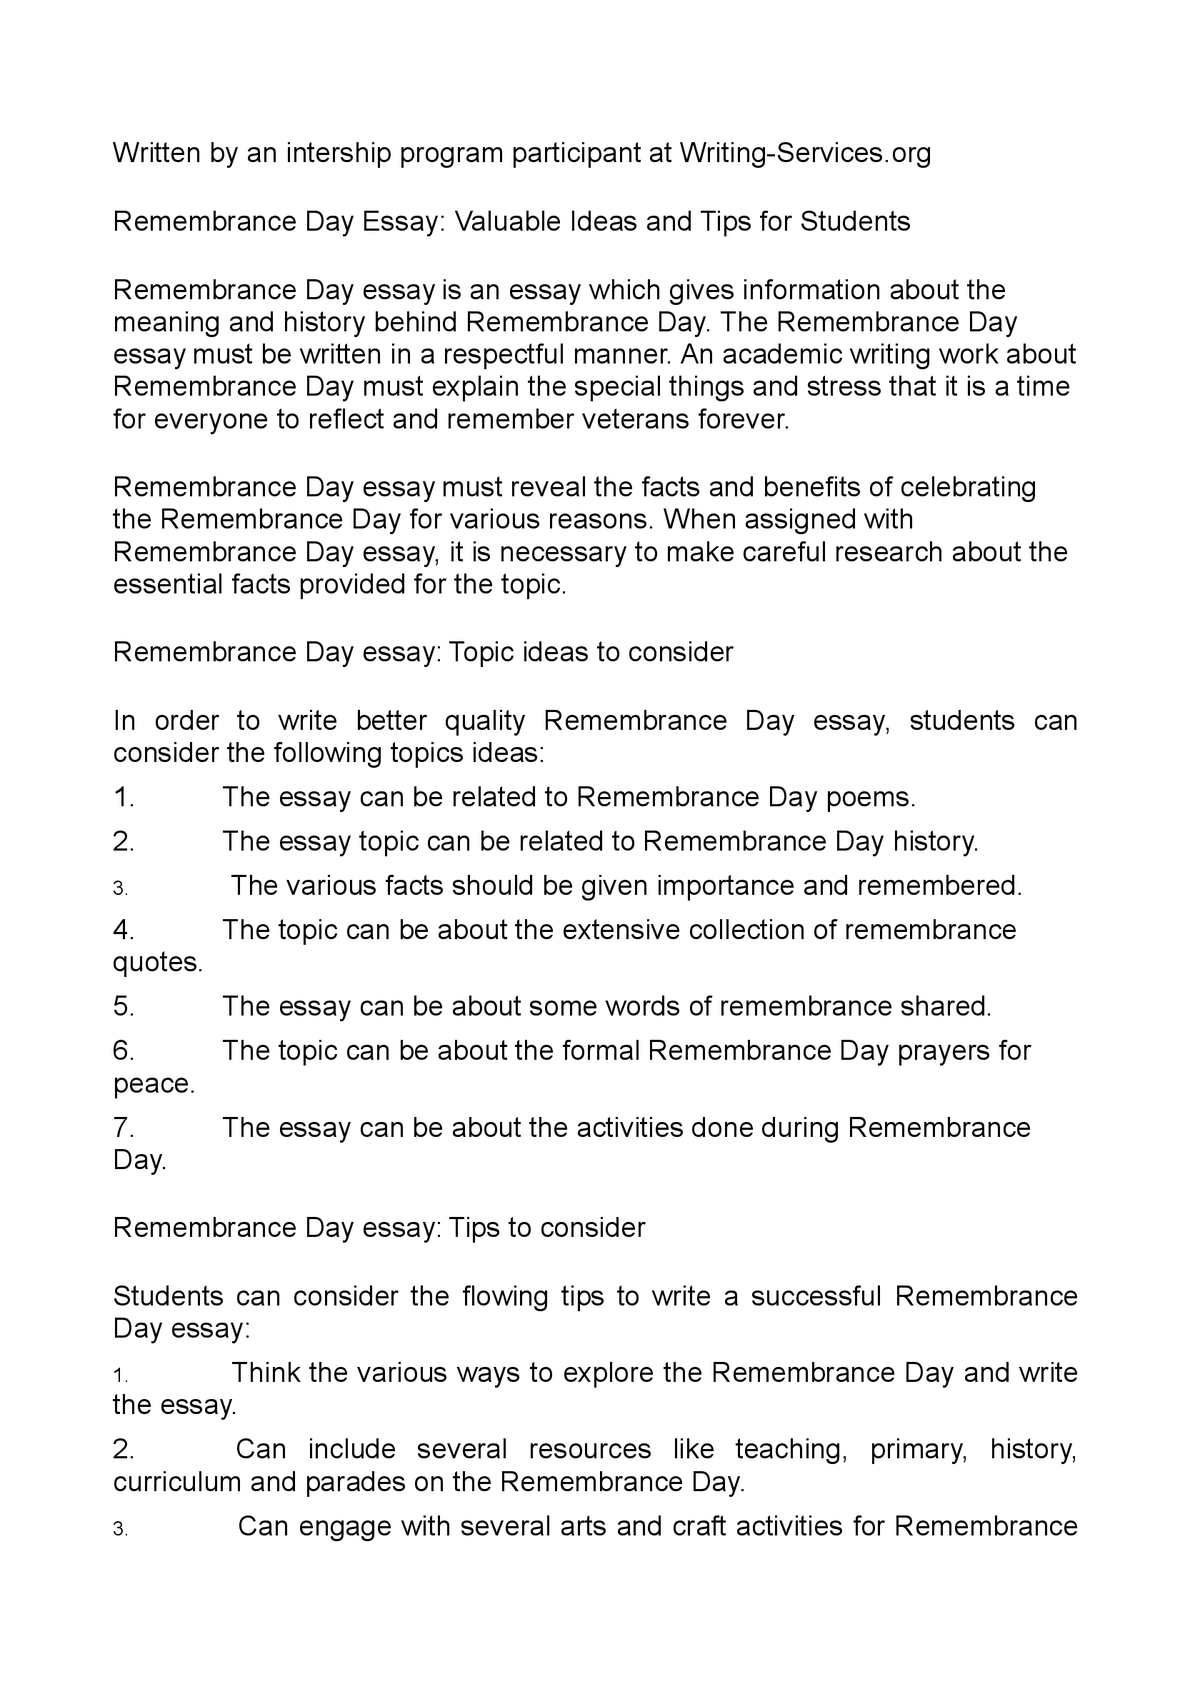 p1 jpg calamatilde131acirccopyo remembrance day essay valuable ideas and tips for students